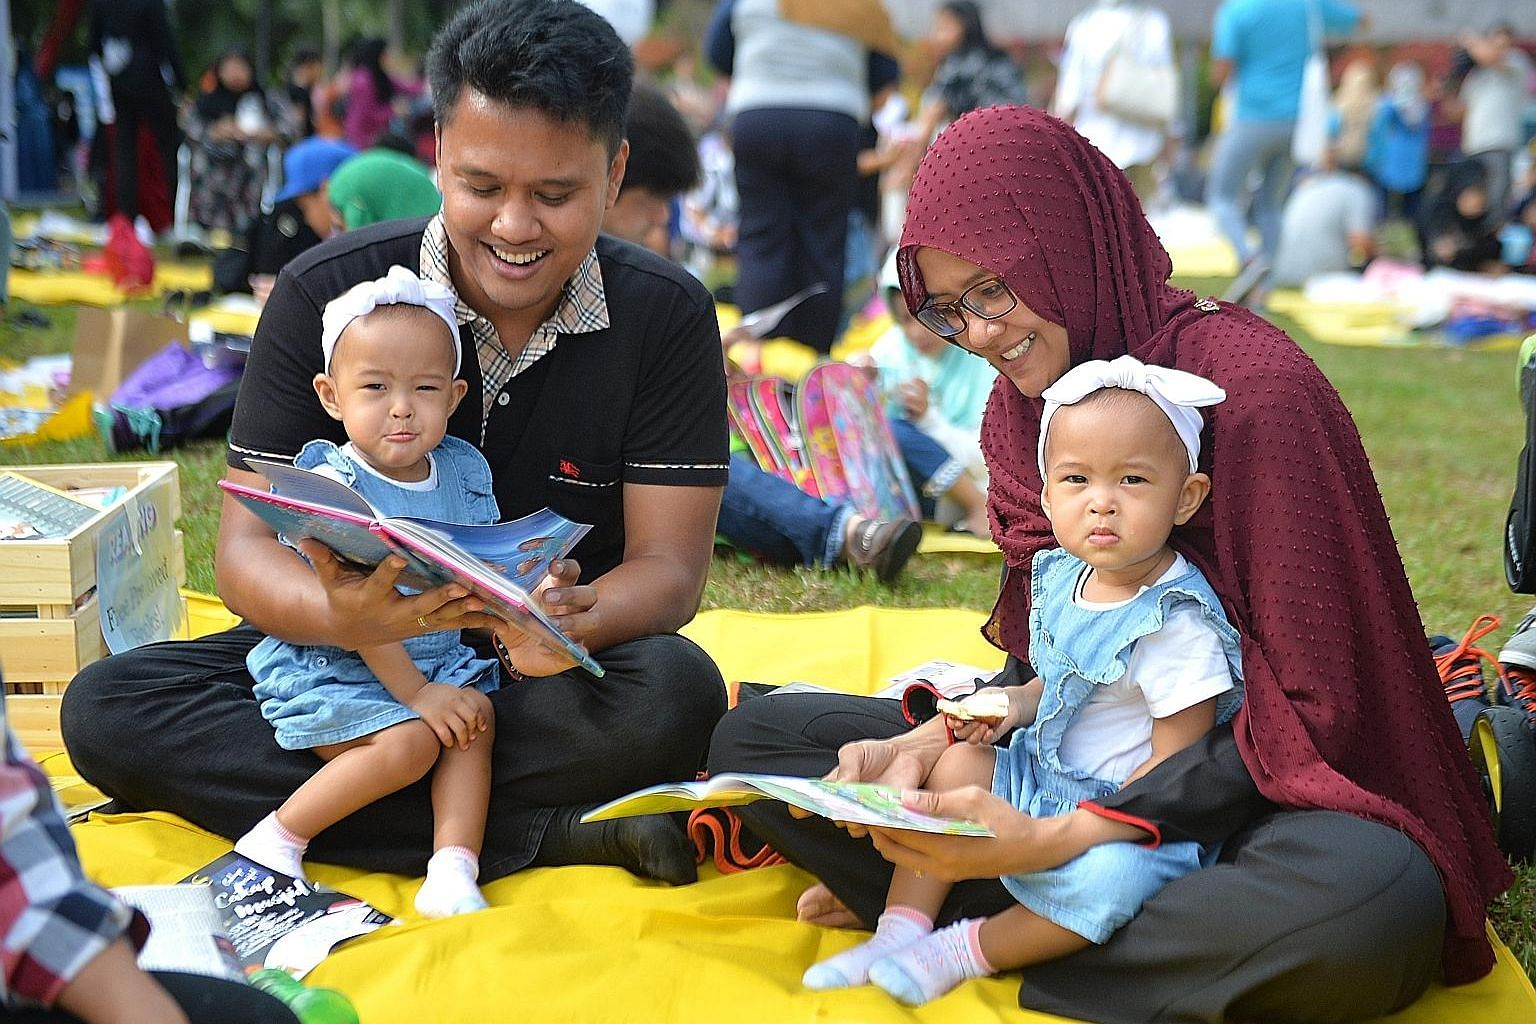 Civil servant Helmi Rosman and his wife Nurkamaliah Omar, both 31, reading with their one-year-old twin daughters Naura (left) and Husna. They were among 1,500 people who turned up for Reading @ The Gardens at Gardens by the Bay yesterday morning, as